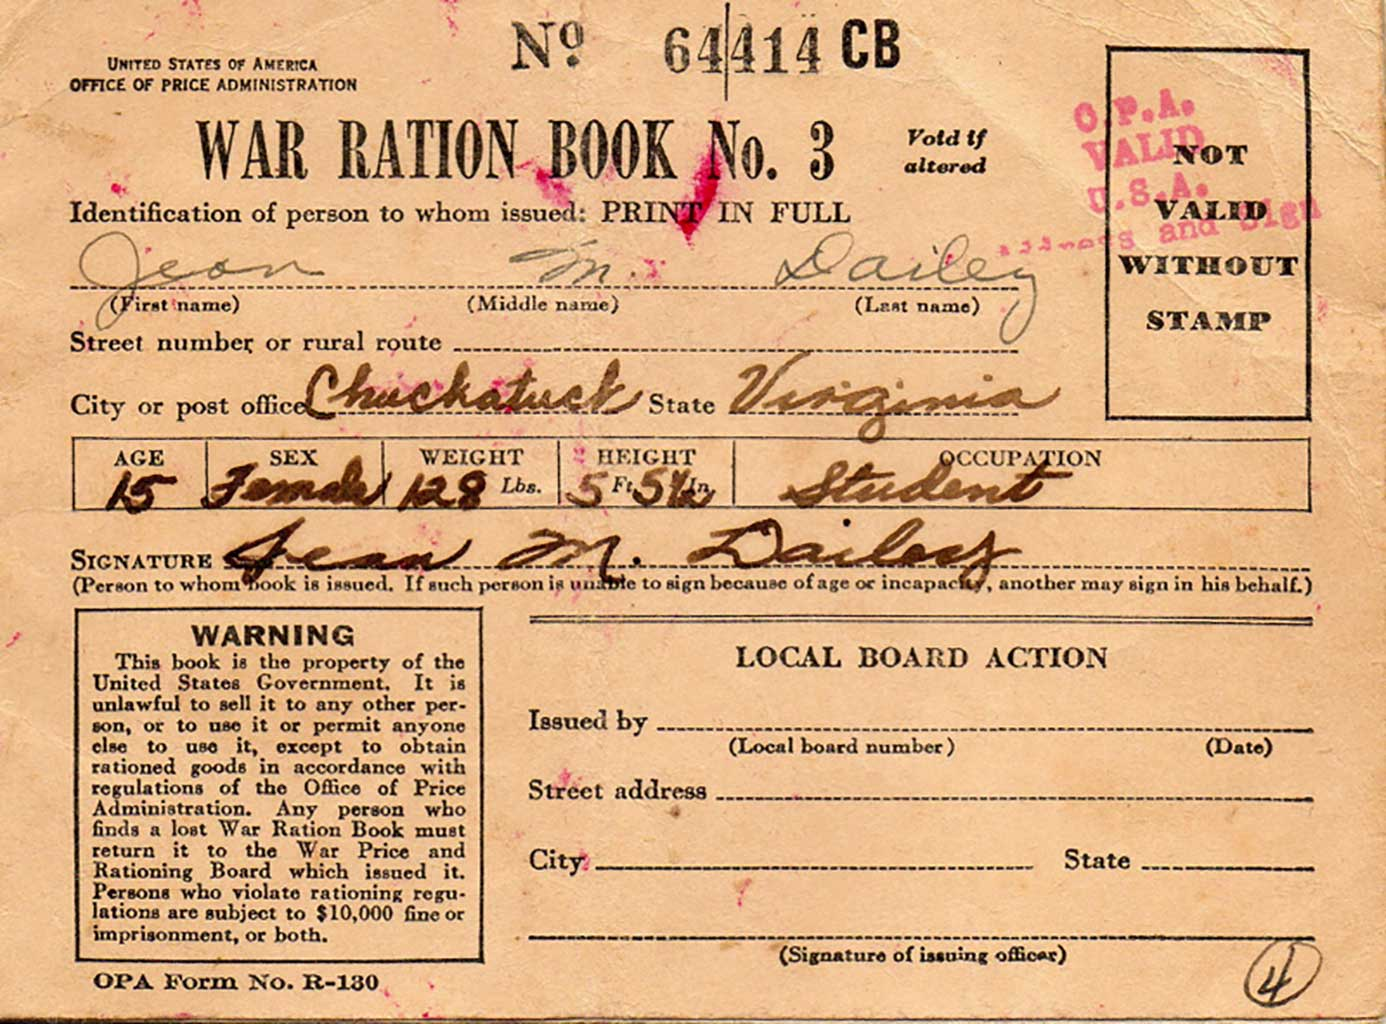 dailey-store-war-ration-book-1942img776